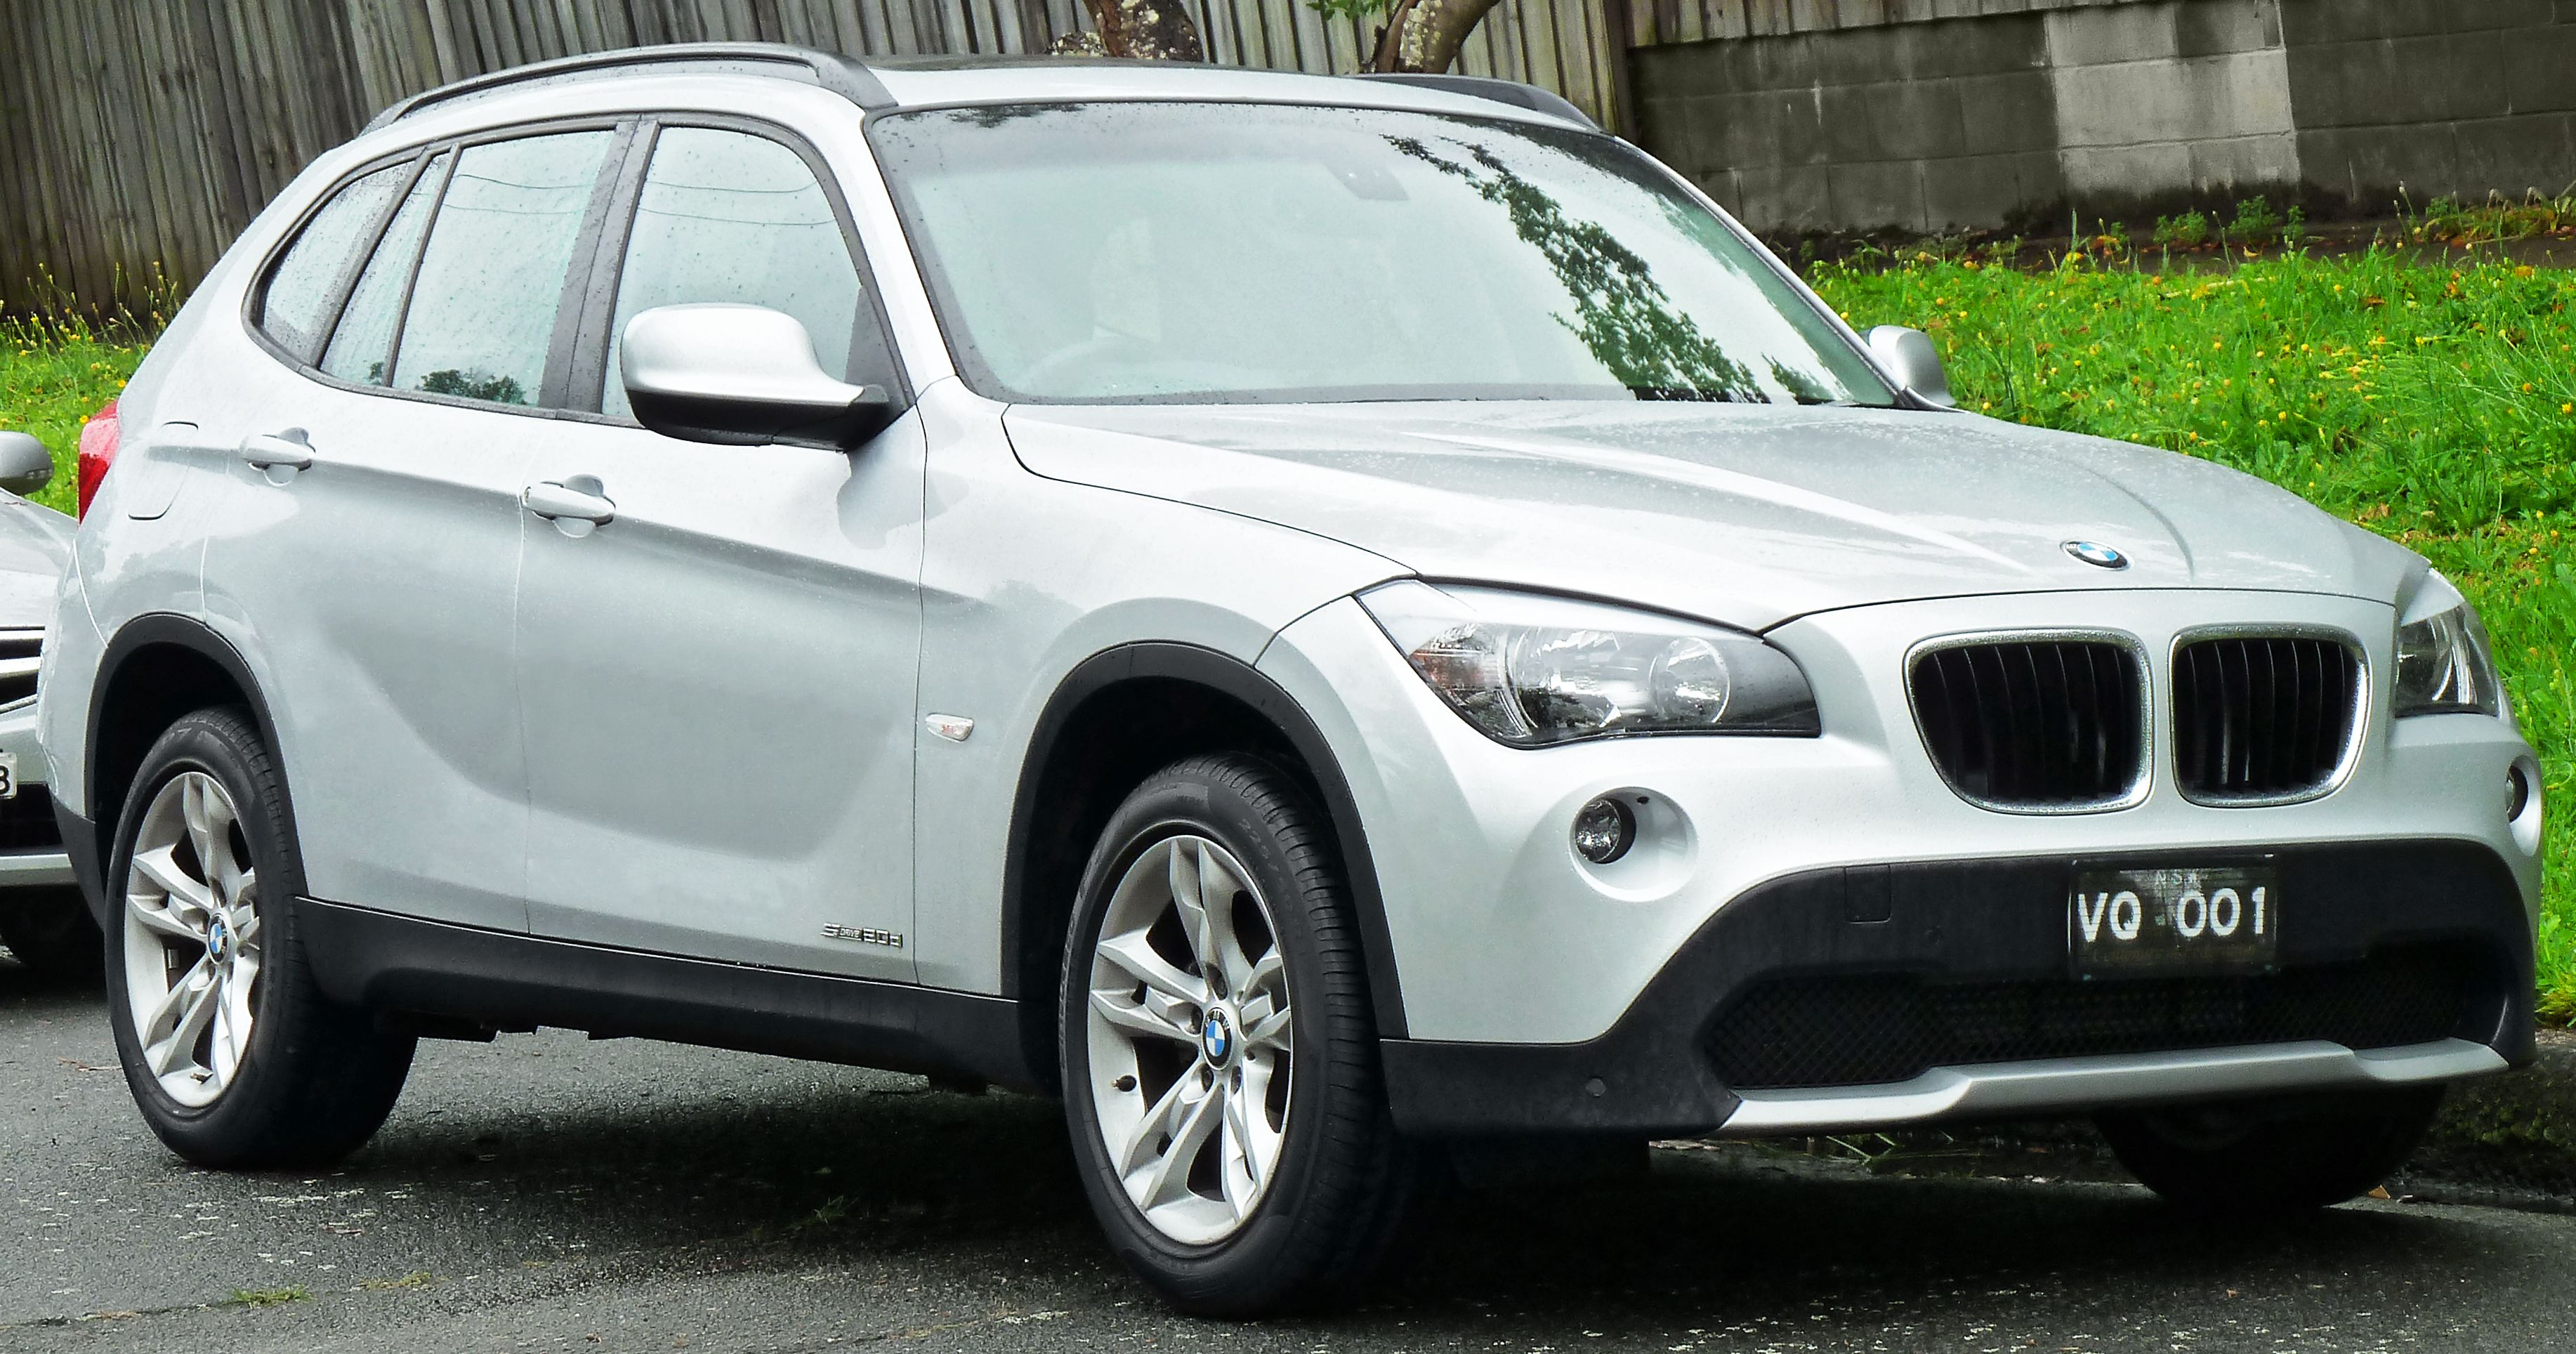 Https Twitter Com Avis Coupon Avis Coupons Revel In The Ride And Save 10 Take Advantage Of 10 Savings On An Avis Signature Series Bmw Concept X1 Bmw Bmw